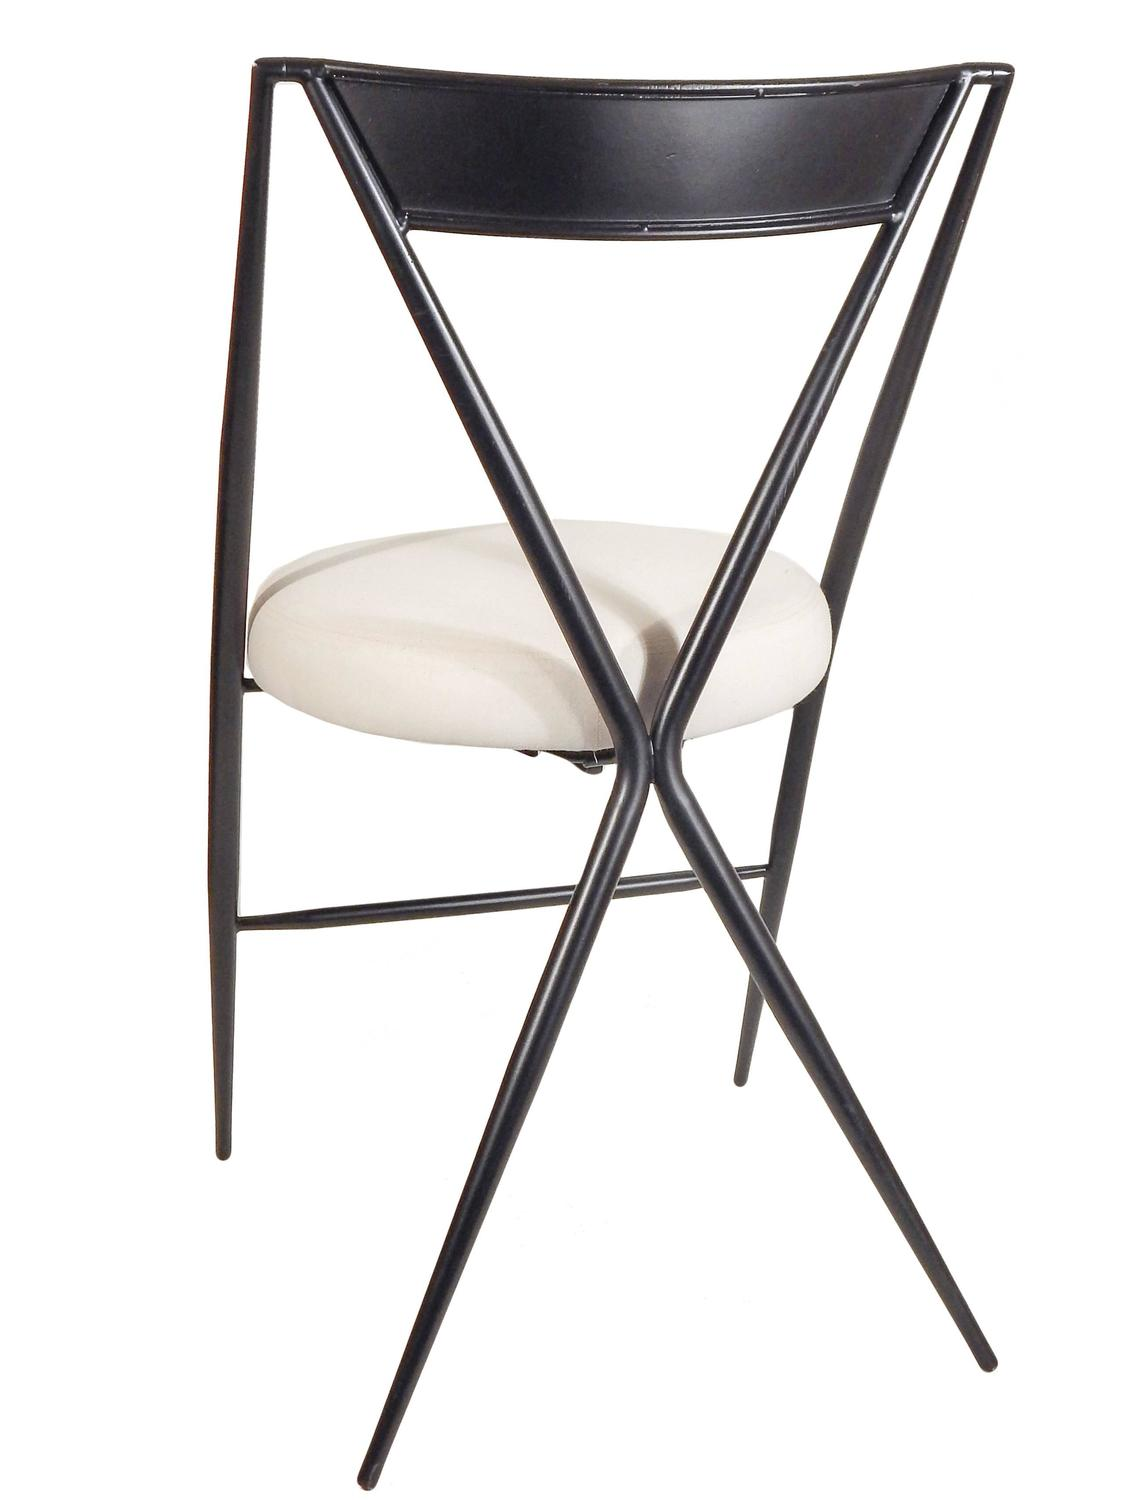 Modern Folding Chairs Pair Of Mid Century Modern Folding Chairs For Sale At 1stdibs